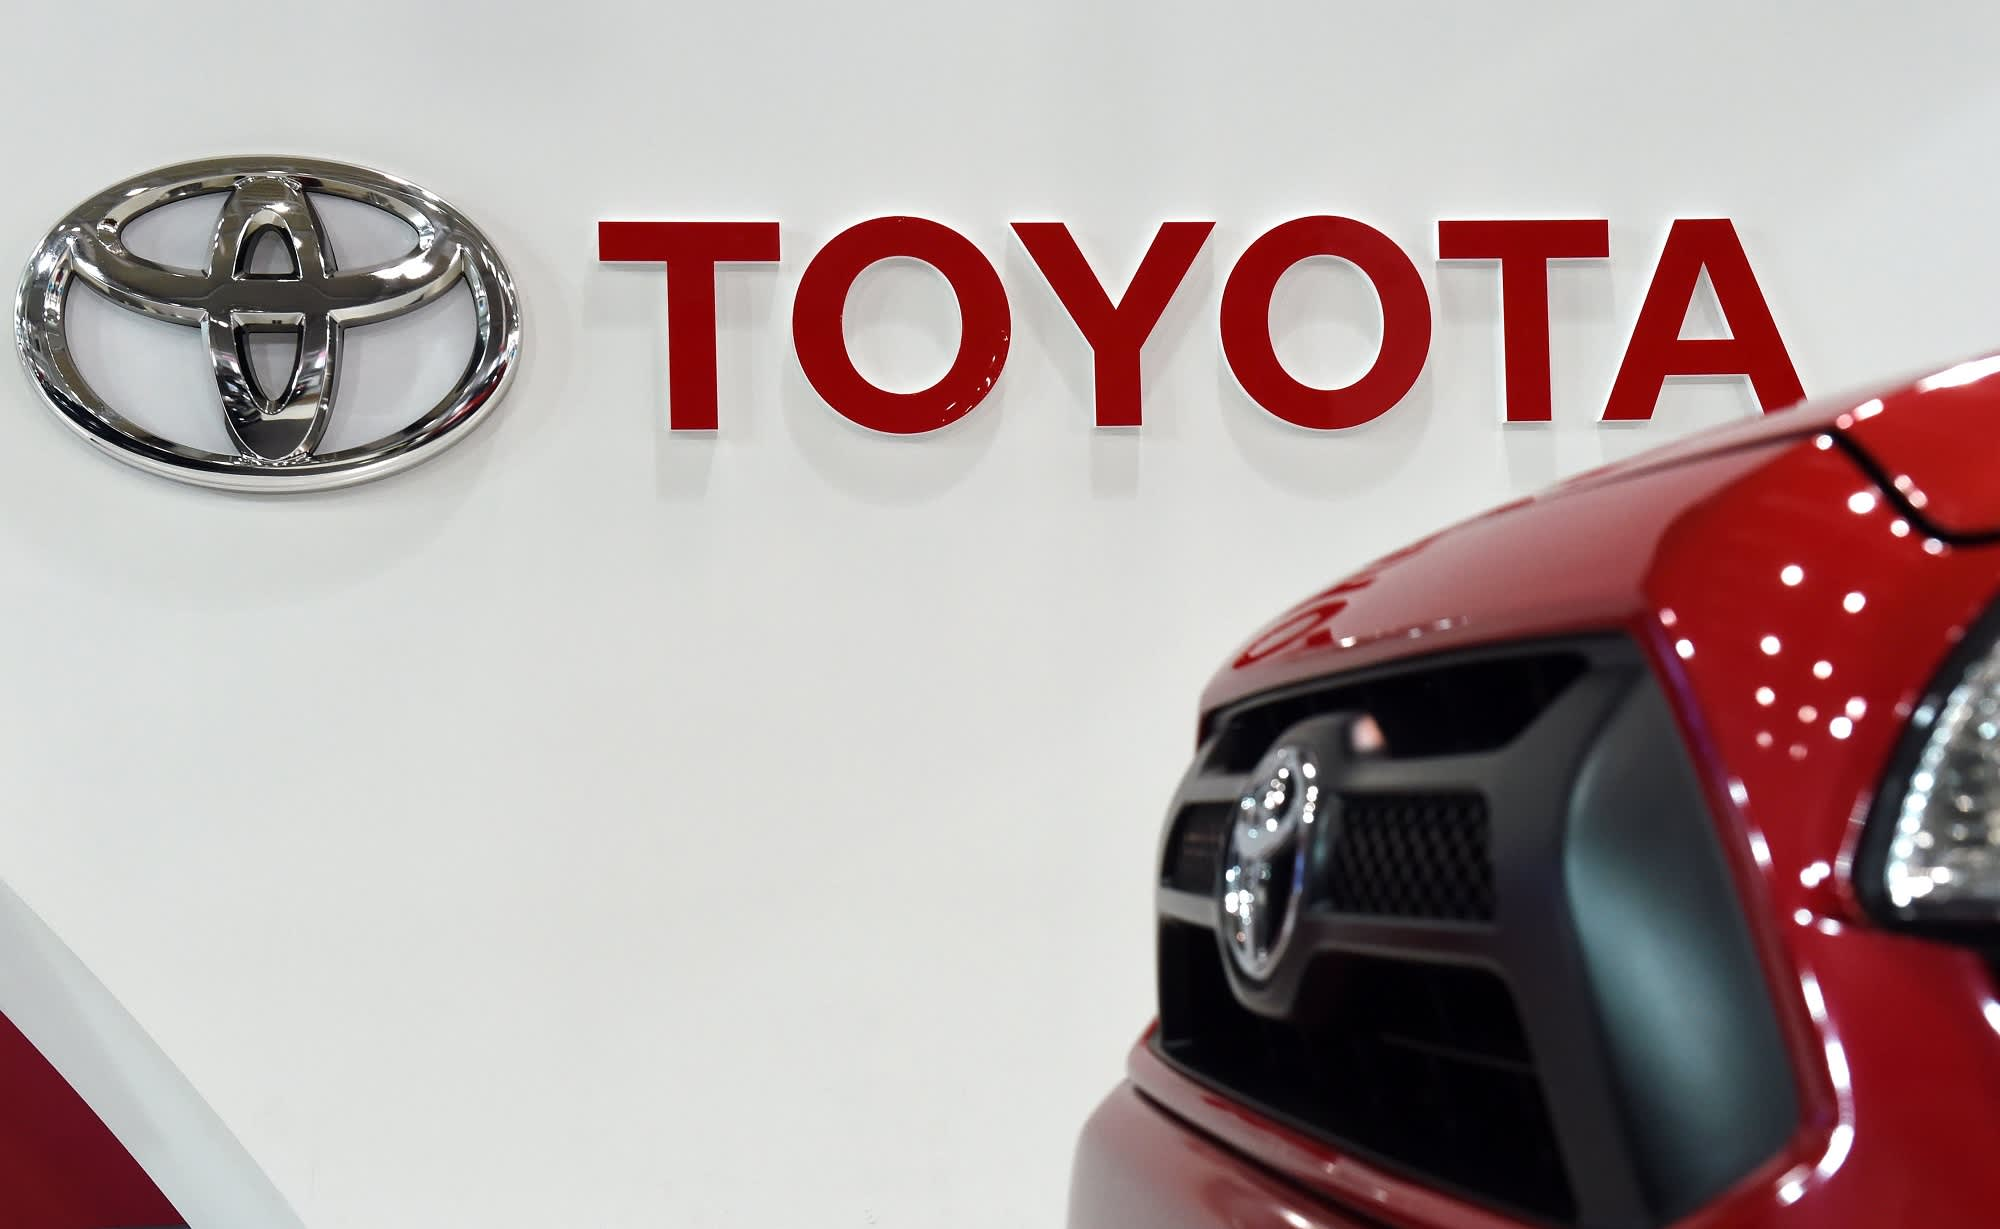 Toyota says Trump's latest tariff threat shows Japanese investments in US are 'not welcomed'